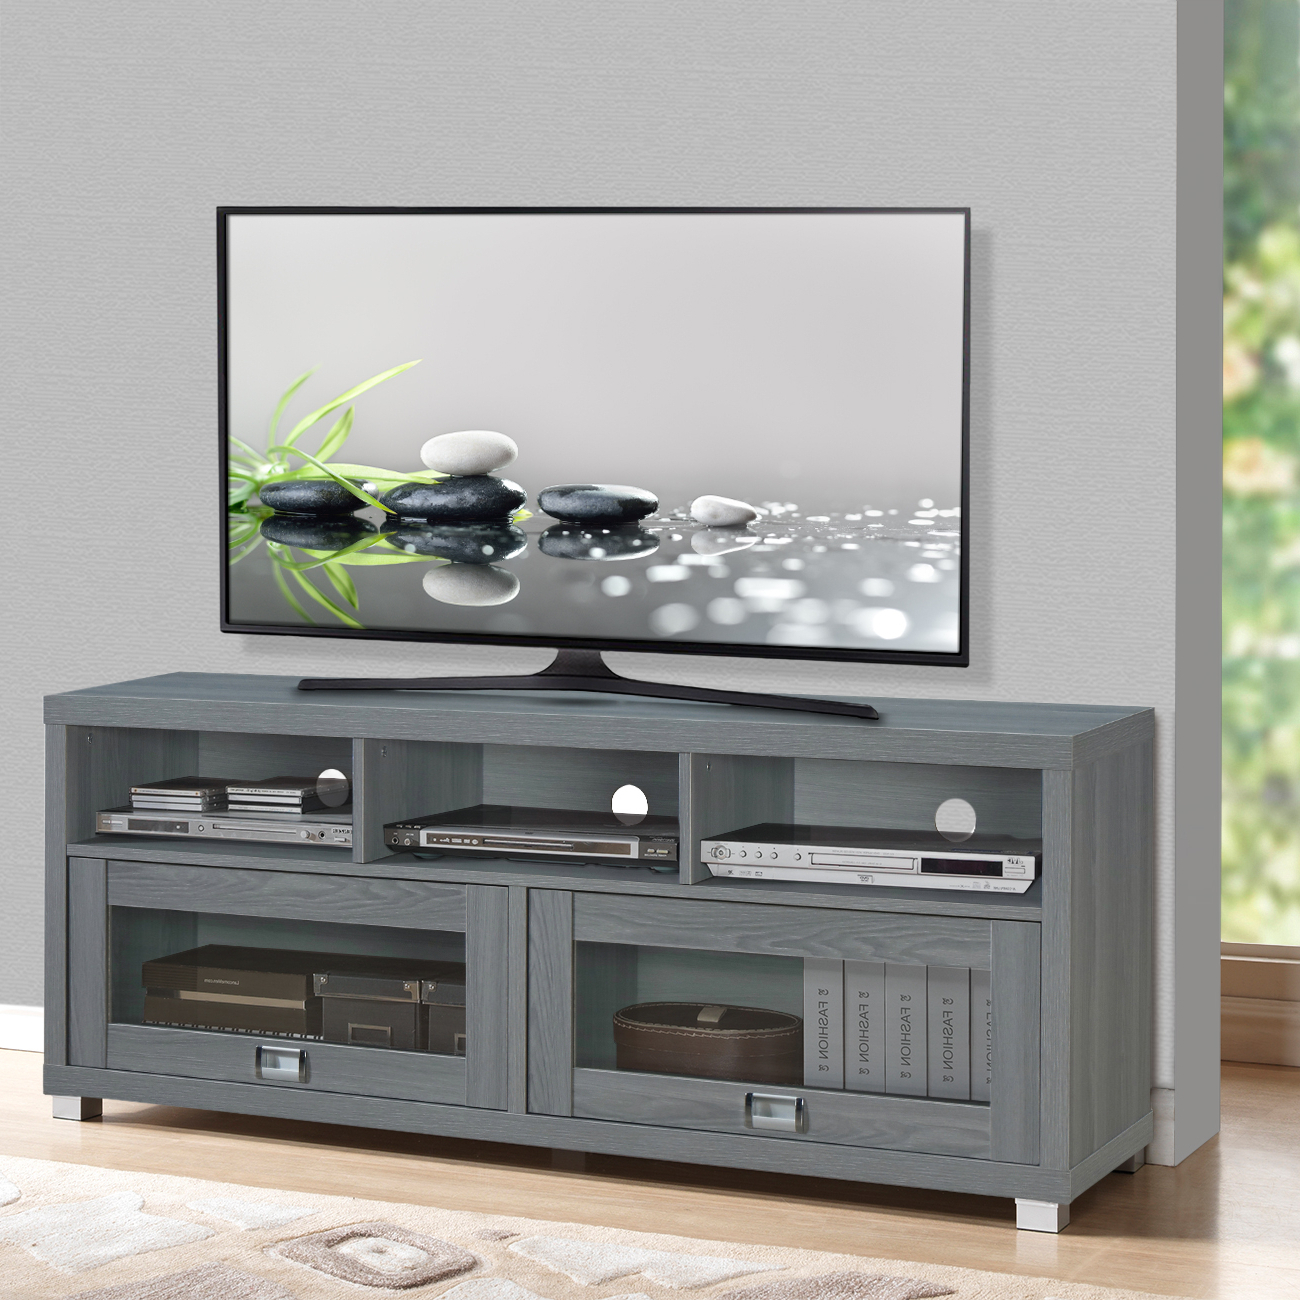 """Leonid Tv Stands For Tvs Up To 50"""" Within Widely Used Flat Screen Tv Stand Up To 75 Inch 50 55 60 65 70 55in (View 19 of 25)"""